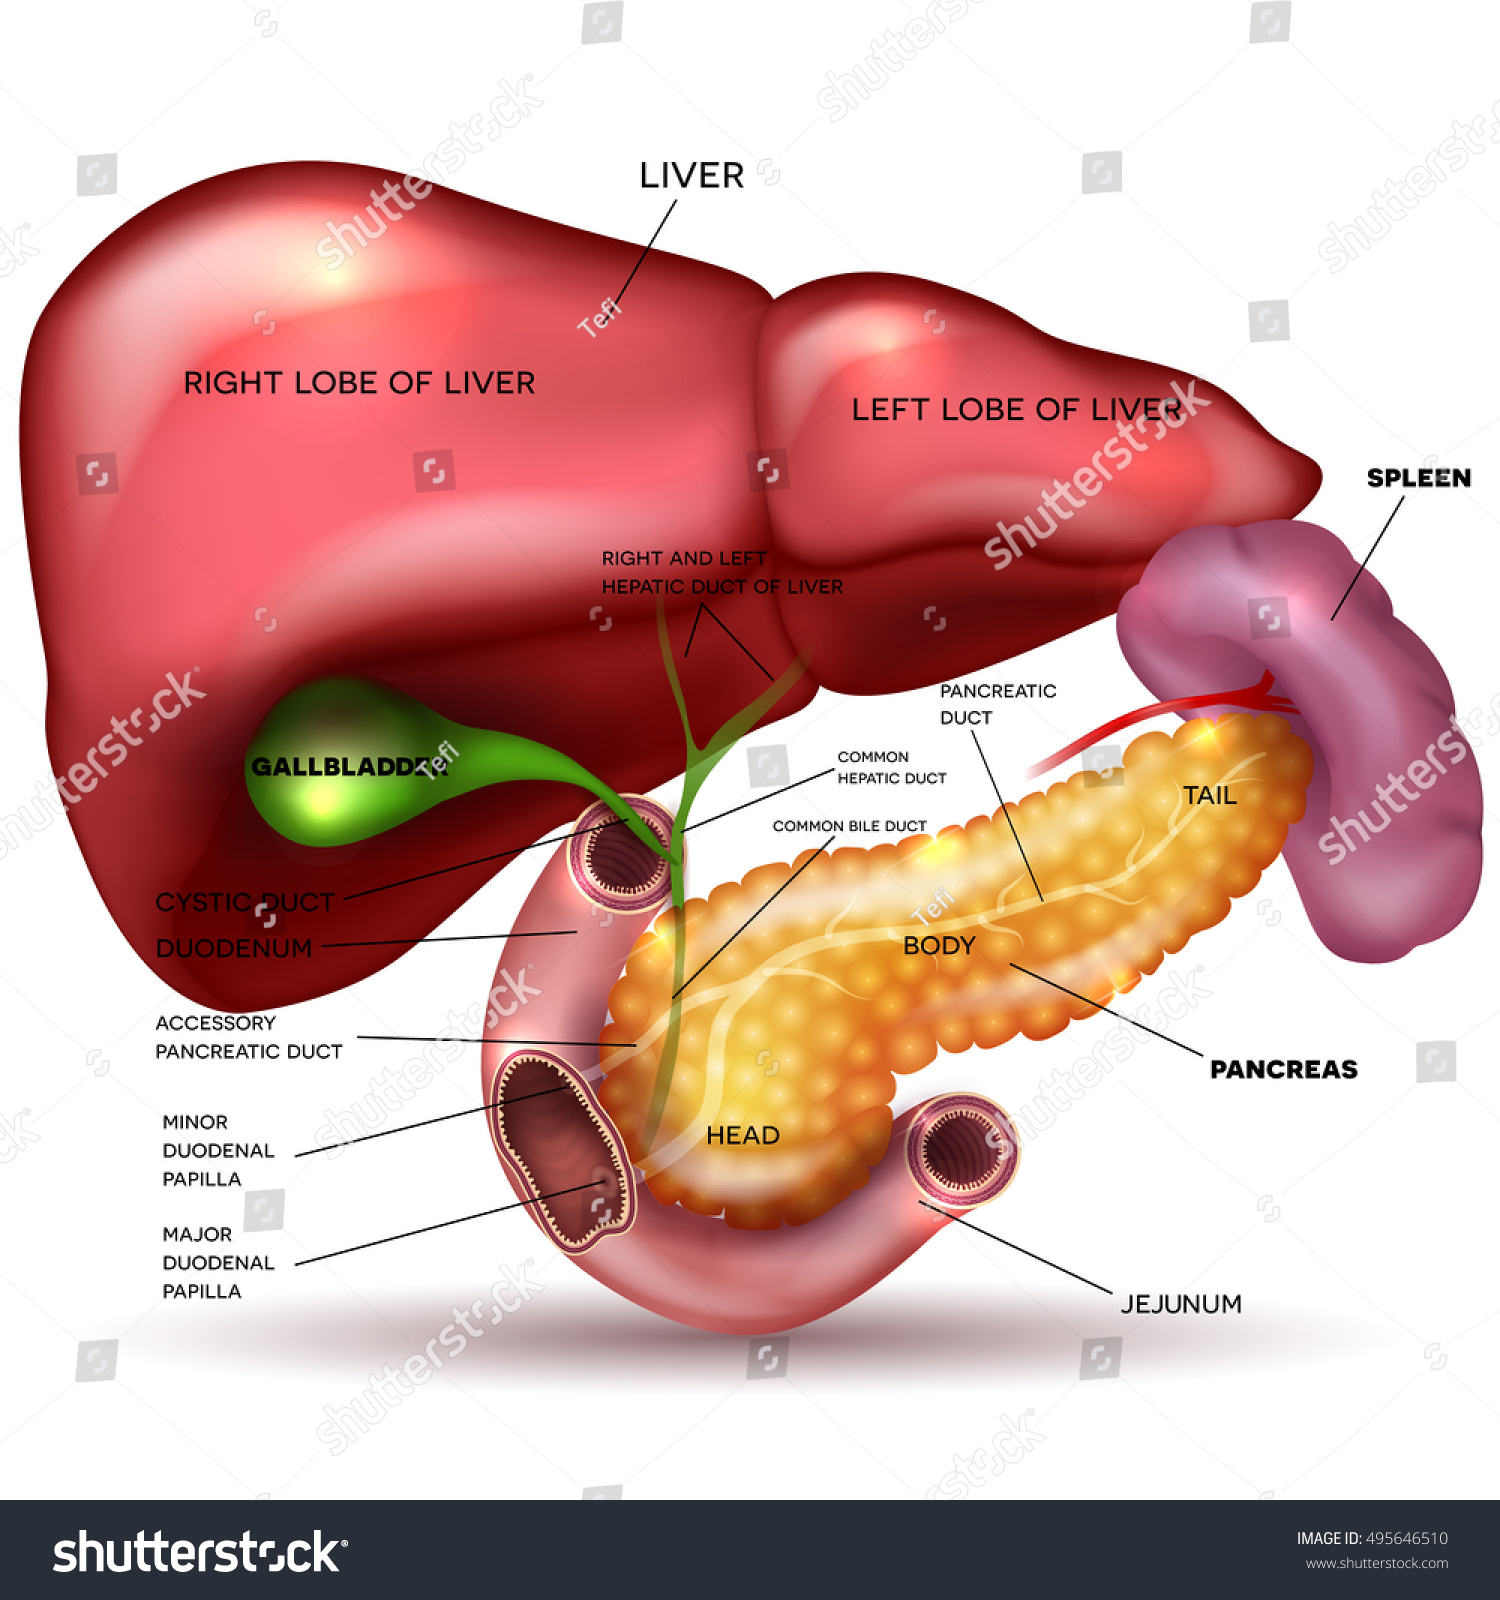 Liver Pancreas Gallbladder Spleen Detailed Drawing Vector de ...